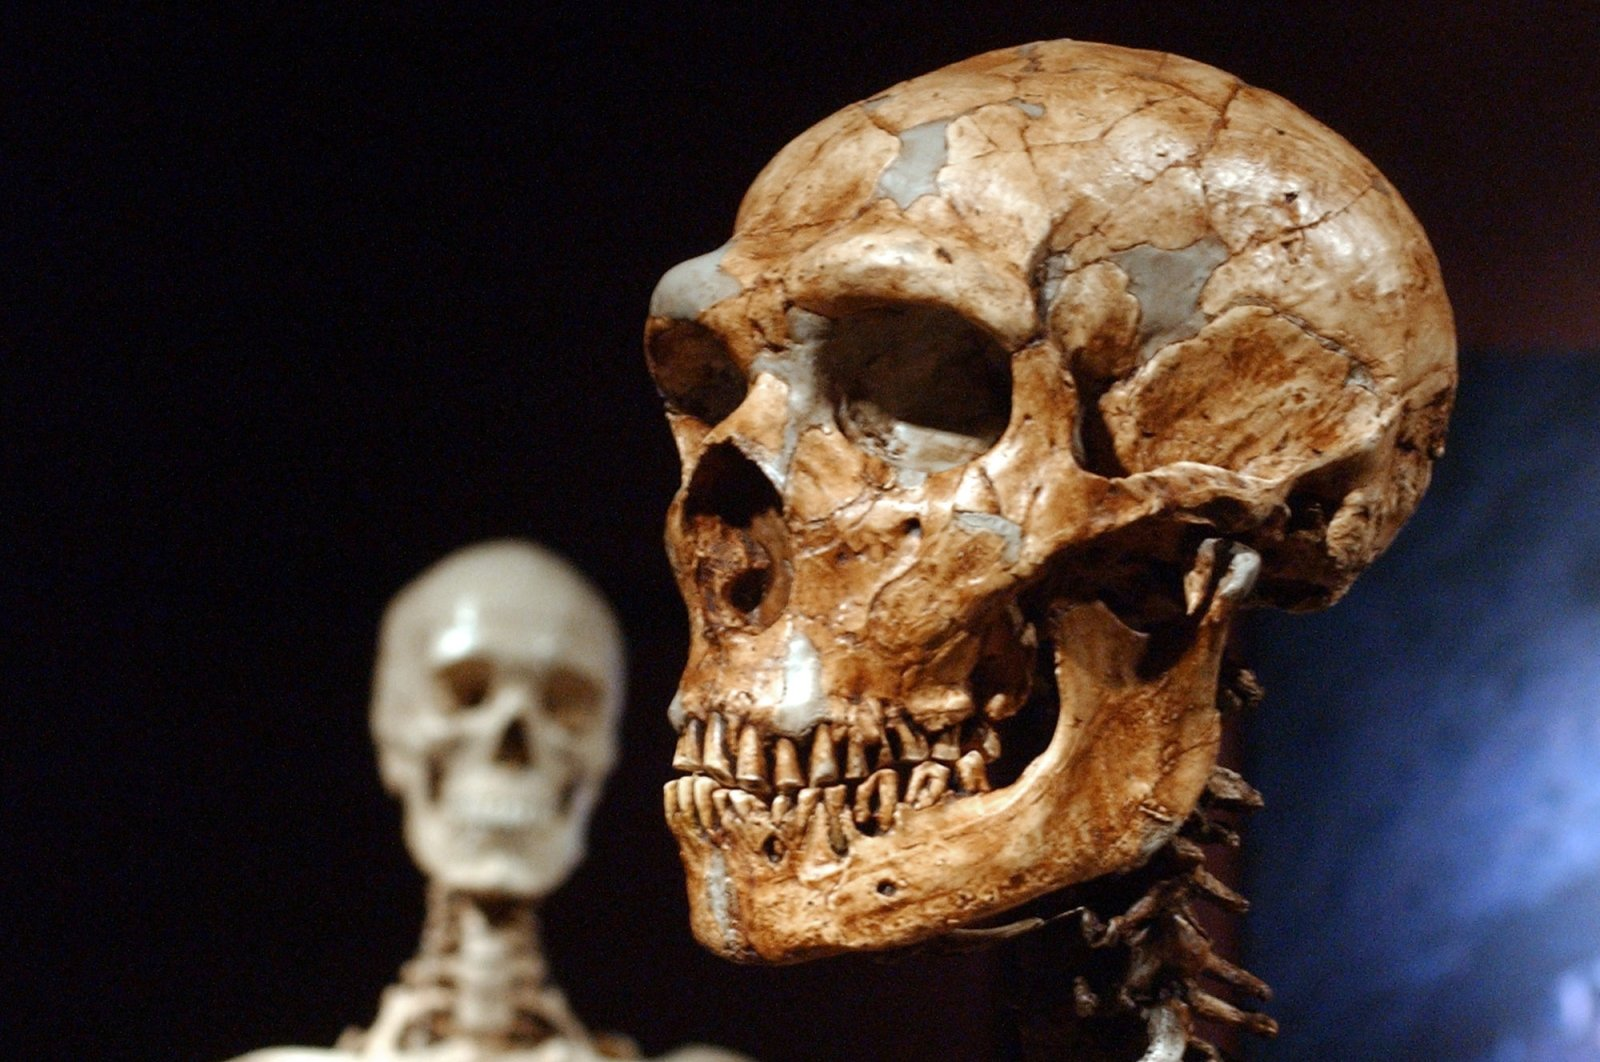 A reconstructed Neanderthal skeleton (R) and a modern human version of a skeleton (L) on display at the Museum of Natural History in New York City, New York, U.S., Jan. 8, 2003. (AP Photo)